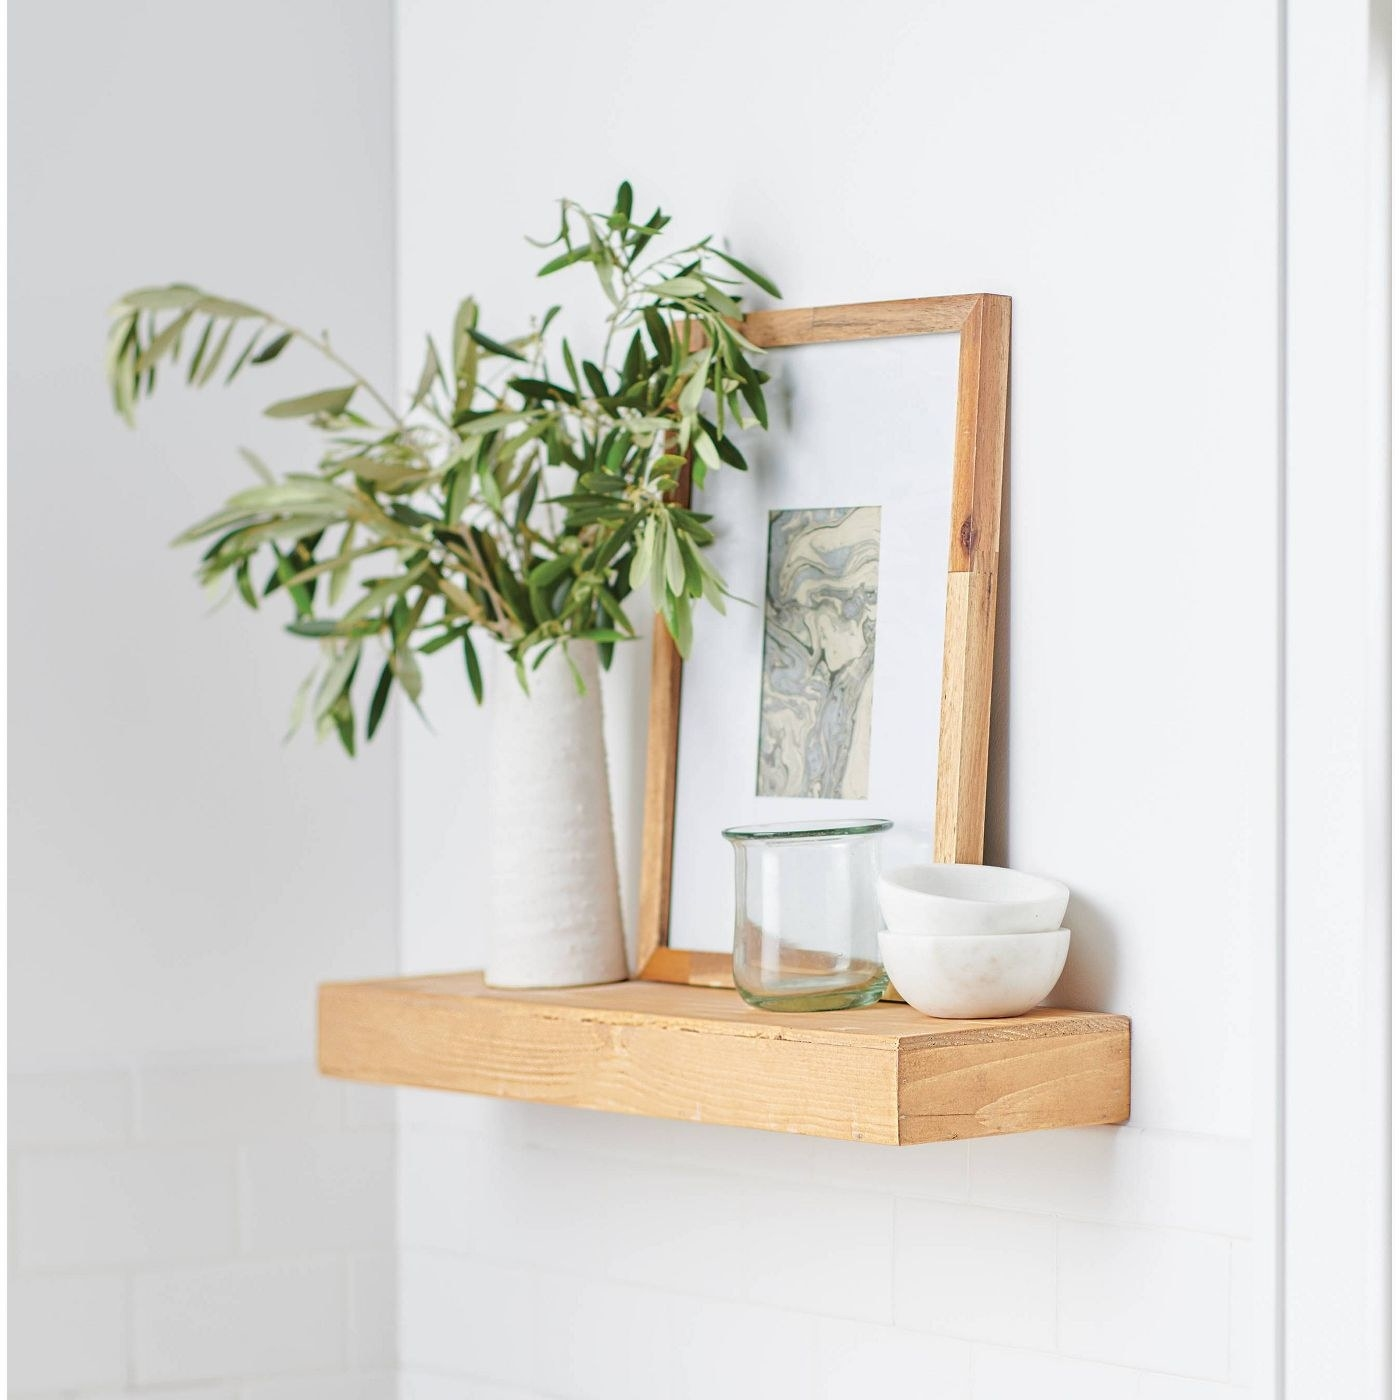 A floating shelf in a home